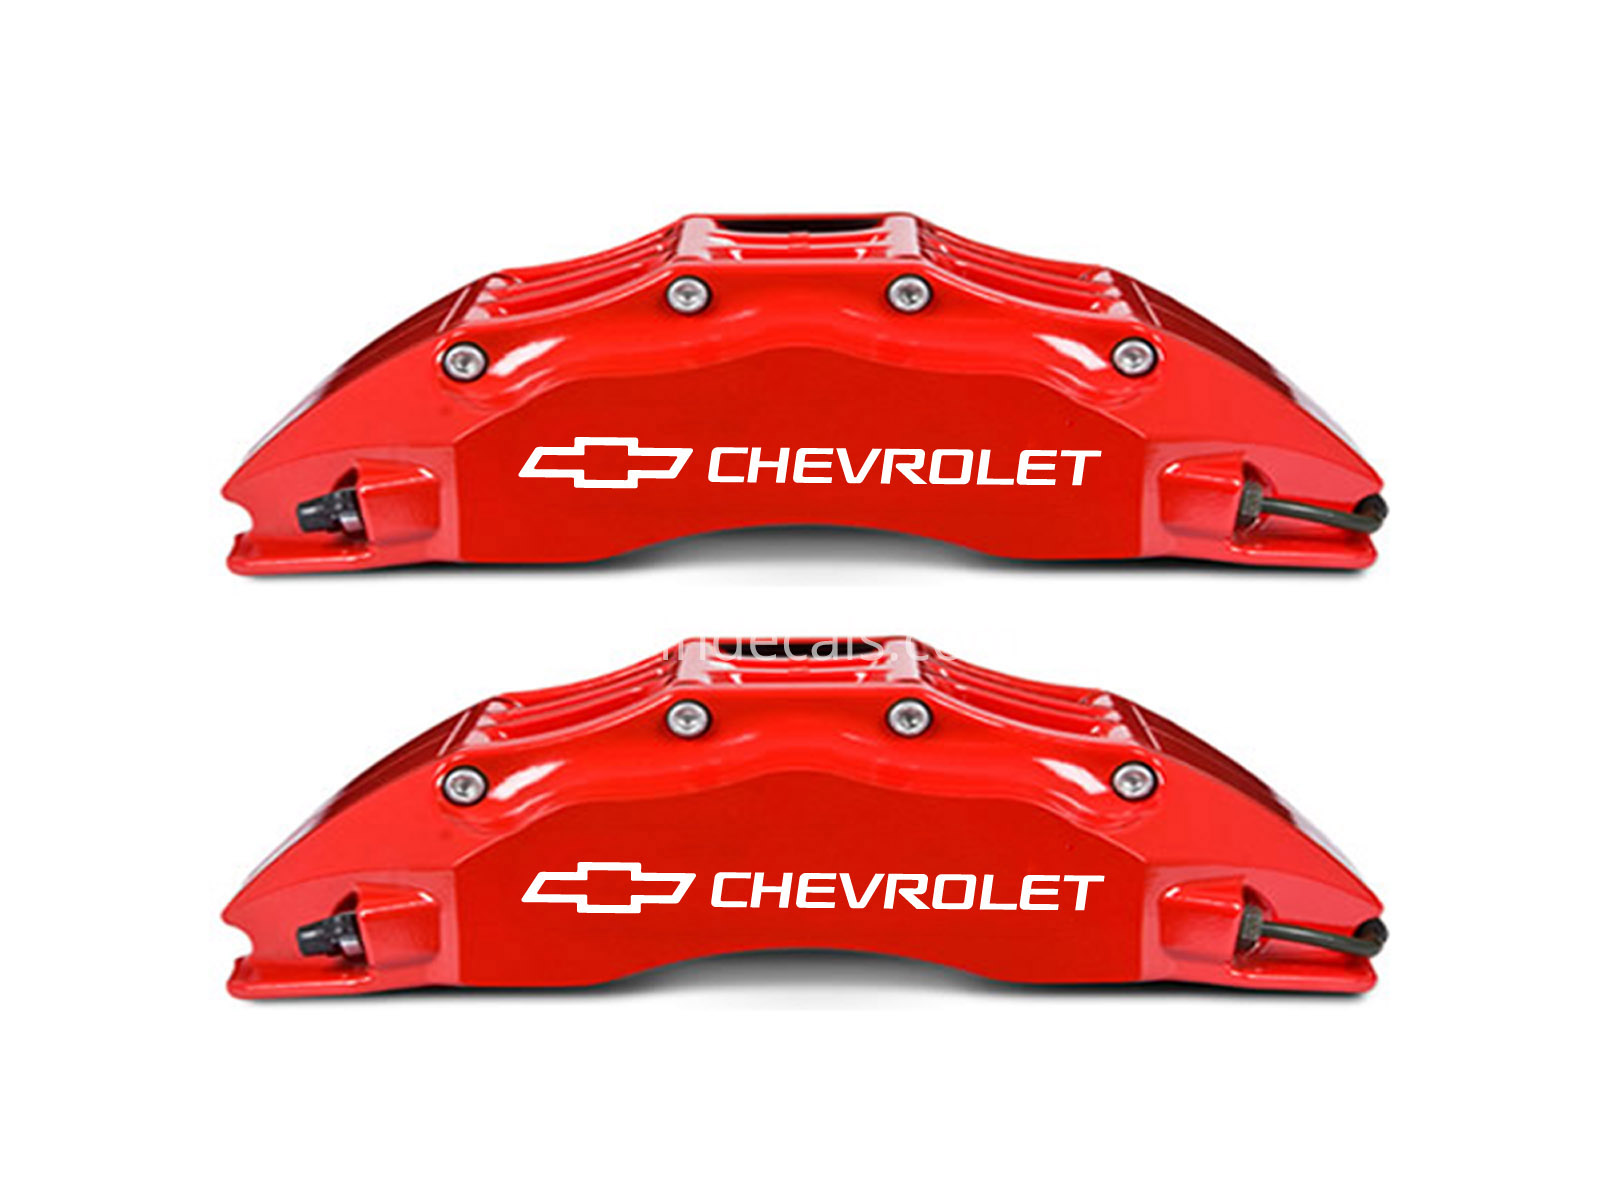 6 x Chevrolet Stickers for Brakes - White